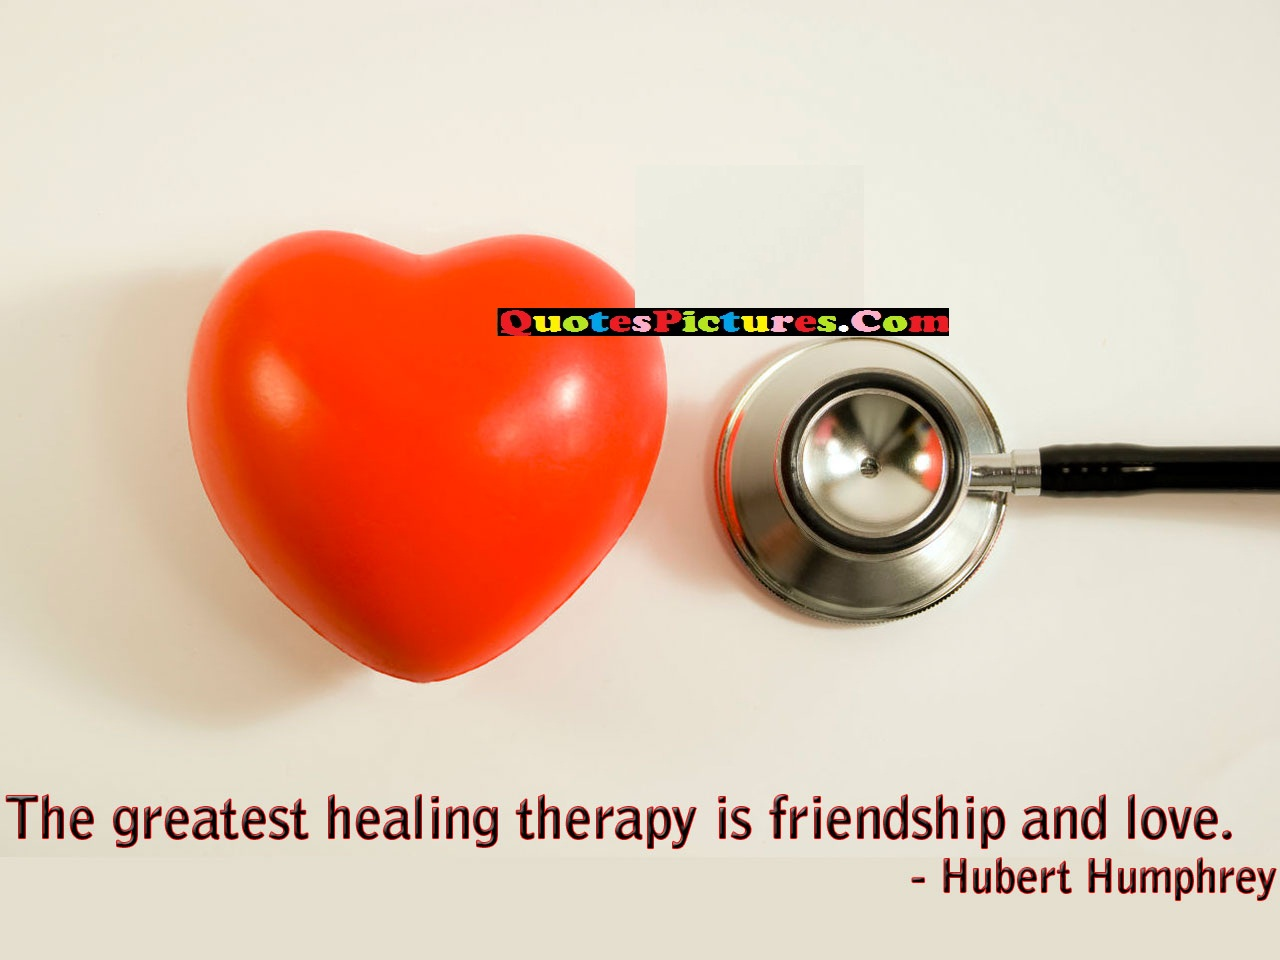 Fantastic Get Well Soon Quote - The Greatest Healingh Therapy Is Friendship And Love. - Hubert Humphery